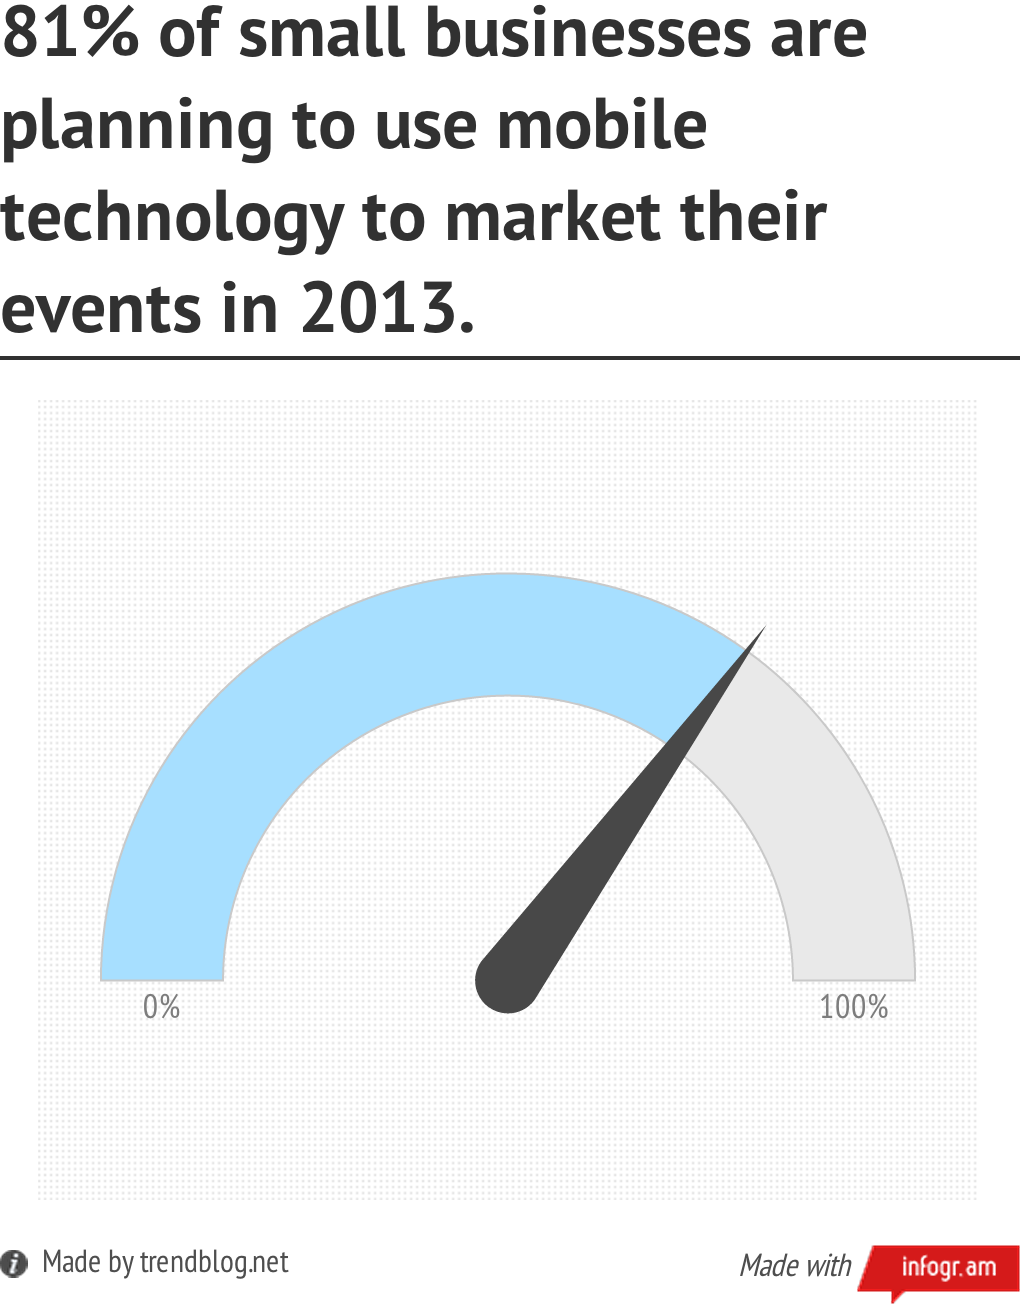 81 percent of businesses plan to use mobile technology for events